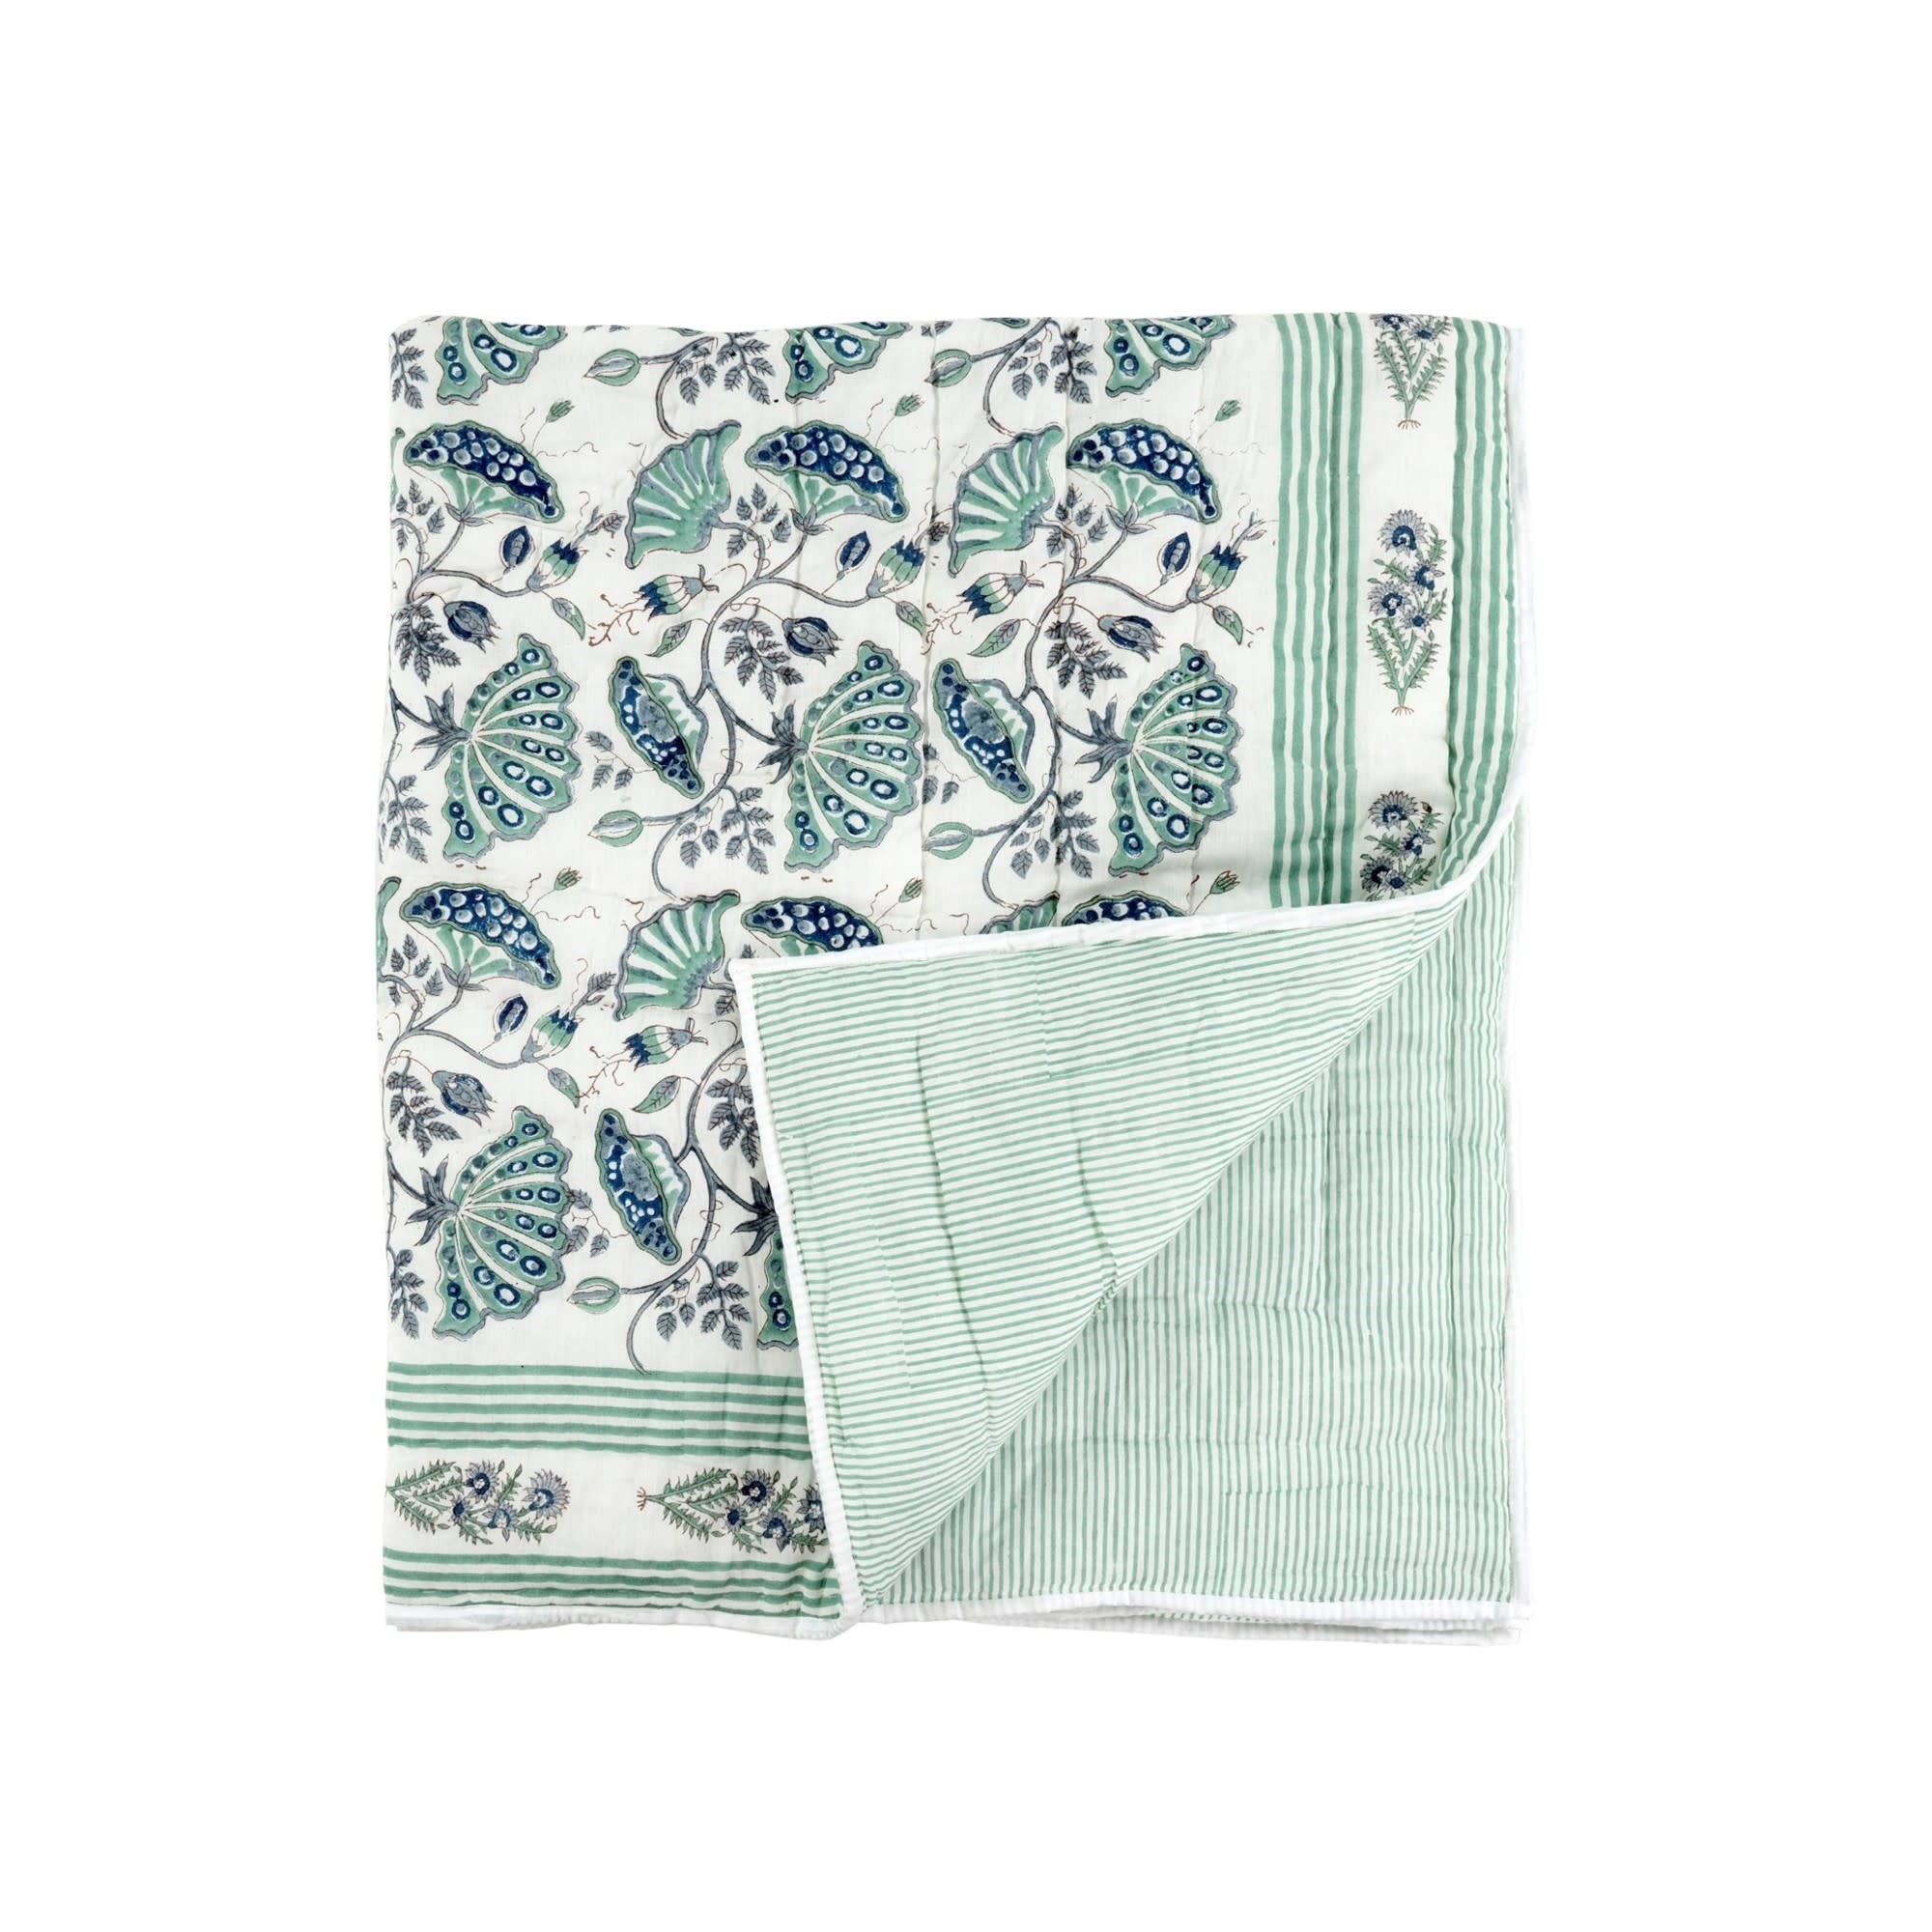 BLOCK PRINT QUILTED THROW